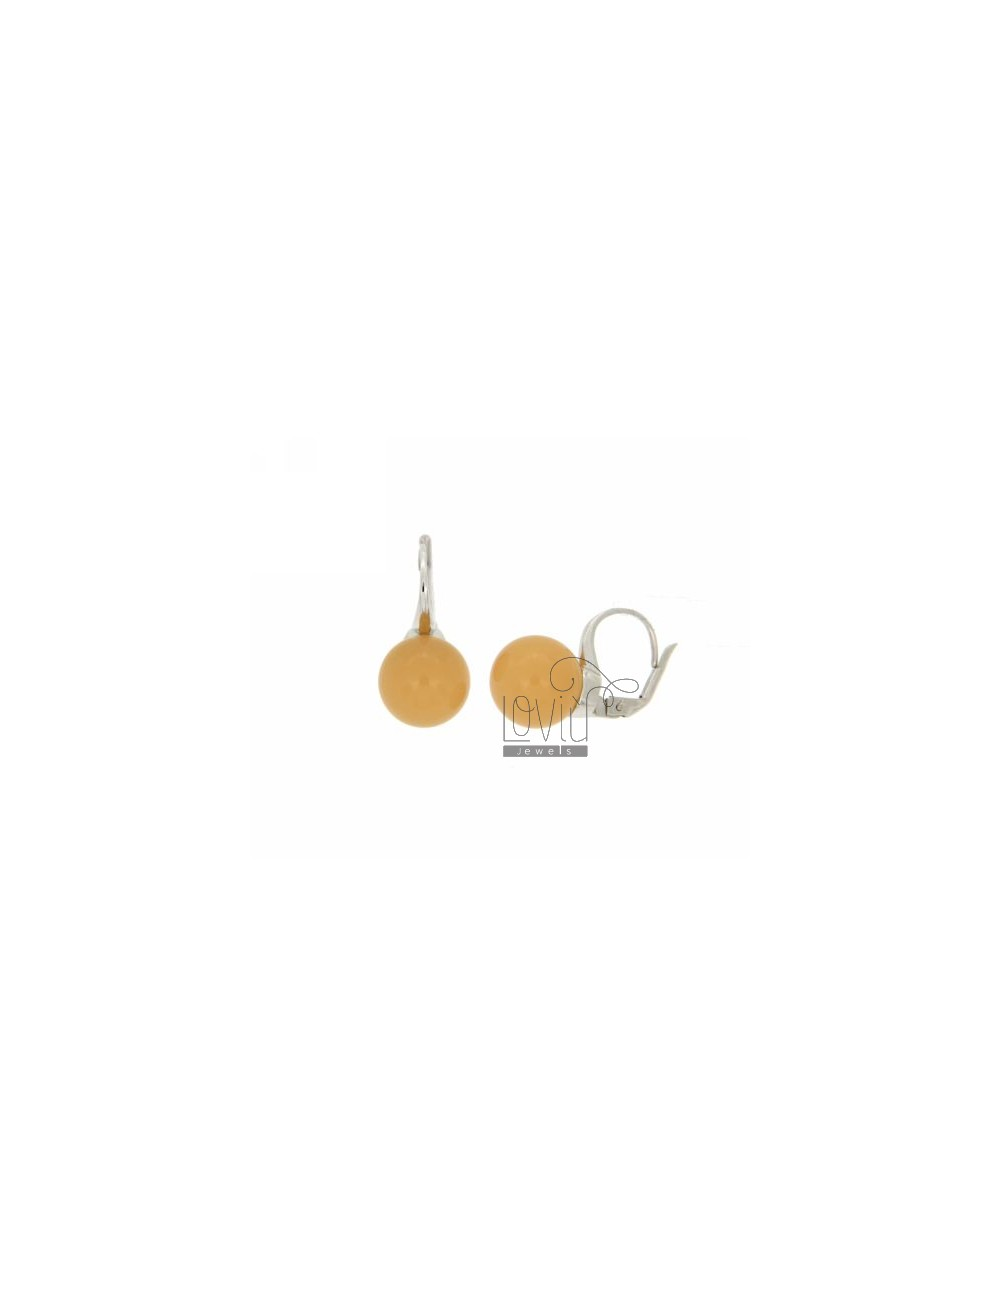 Monachella BALL EARRINGS WITH STONE HYDROTHERMAL 12 MM YELLOW OCRE 31 RHODIUM SILVER TITLE 925